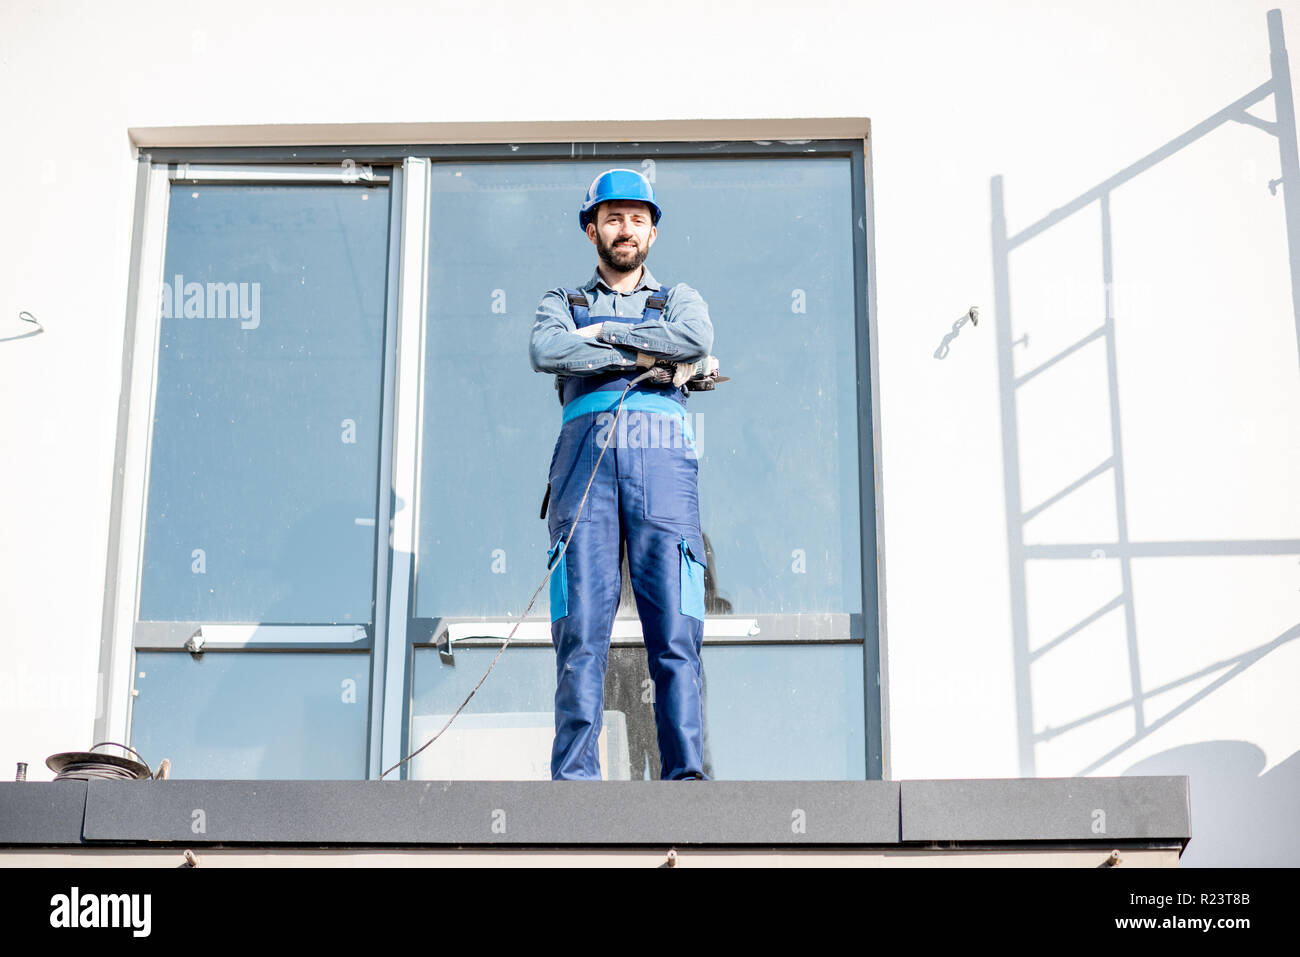 Portraiit of a builder in uniform standing on the balcony of a new house on the construction site Stock Photo